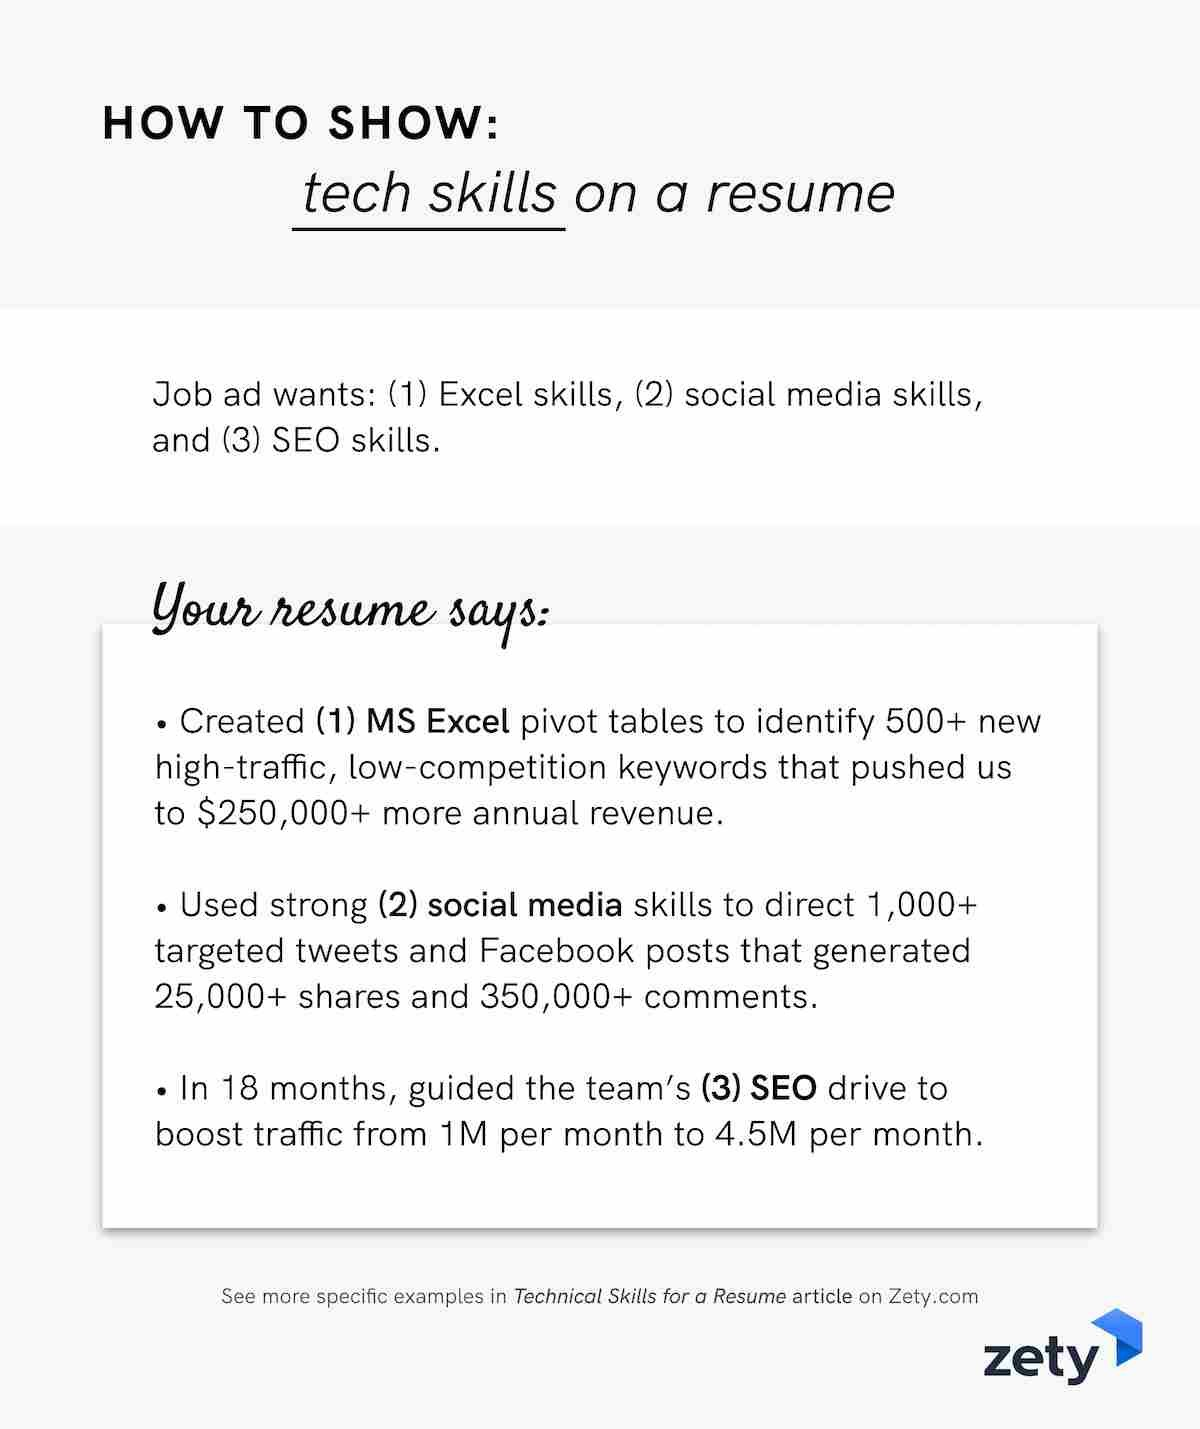 technical skills for resume with examples another word knowledge on to show tech document Resume Another Word For Knowledge On Resume